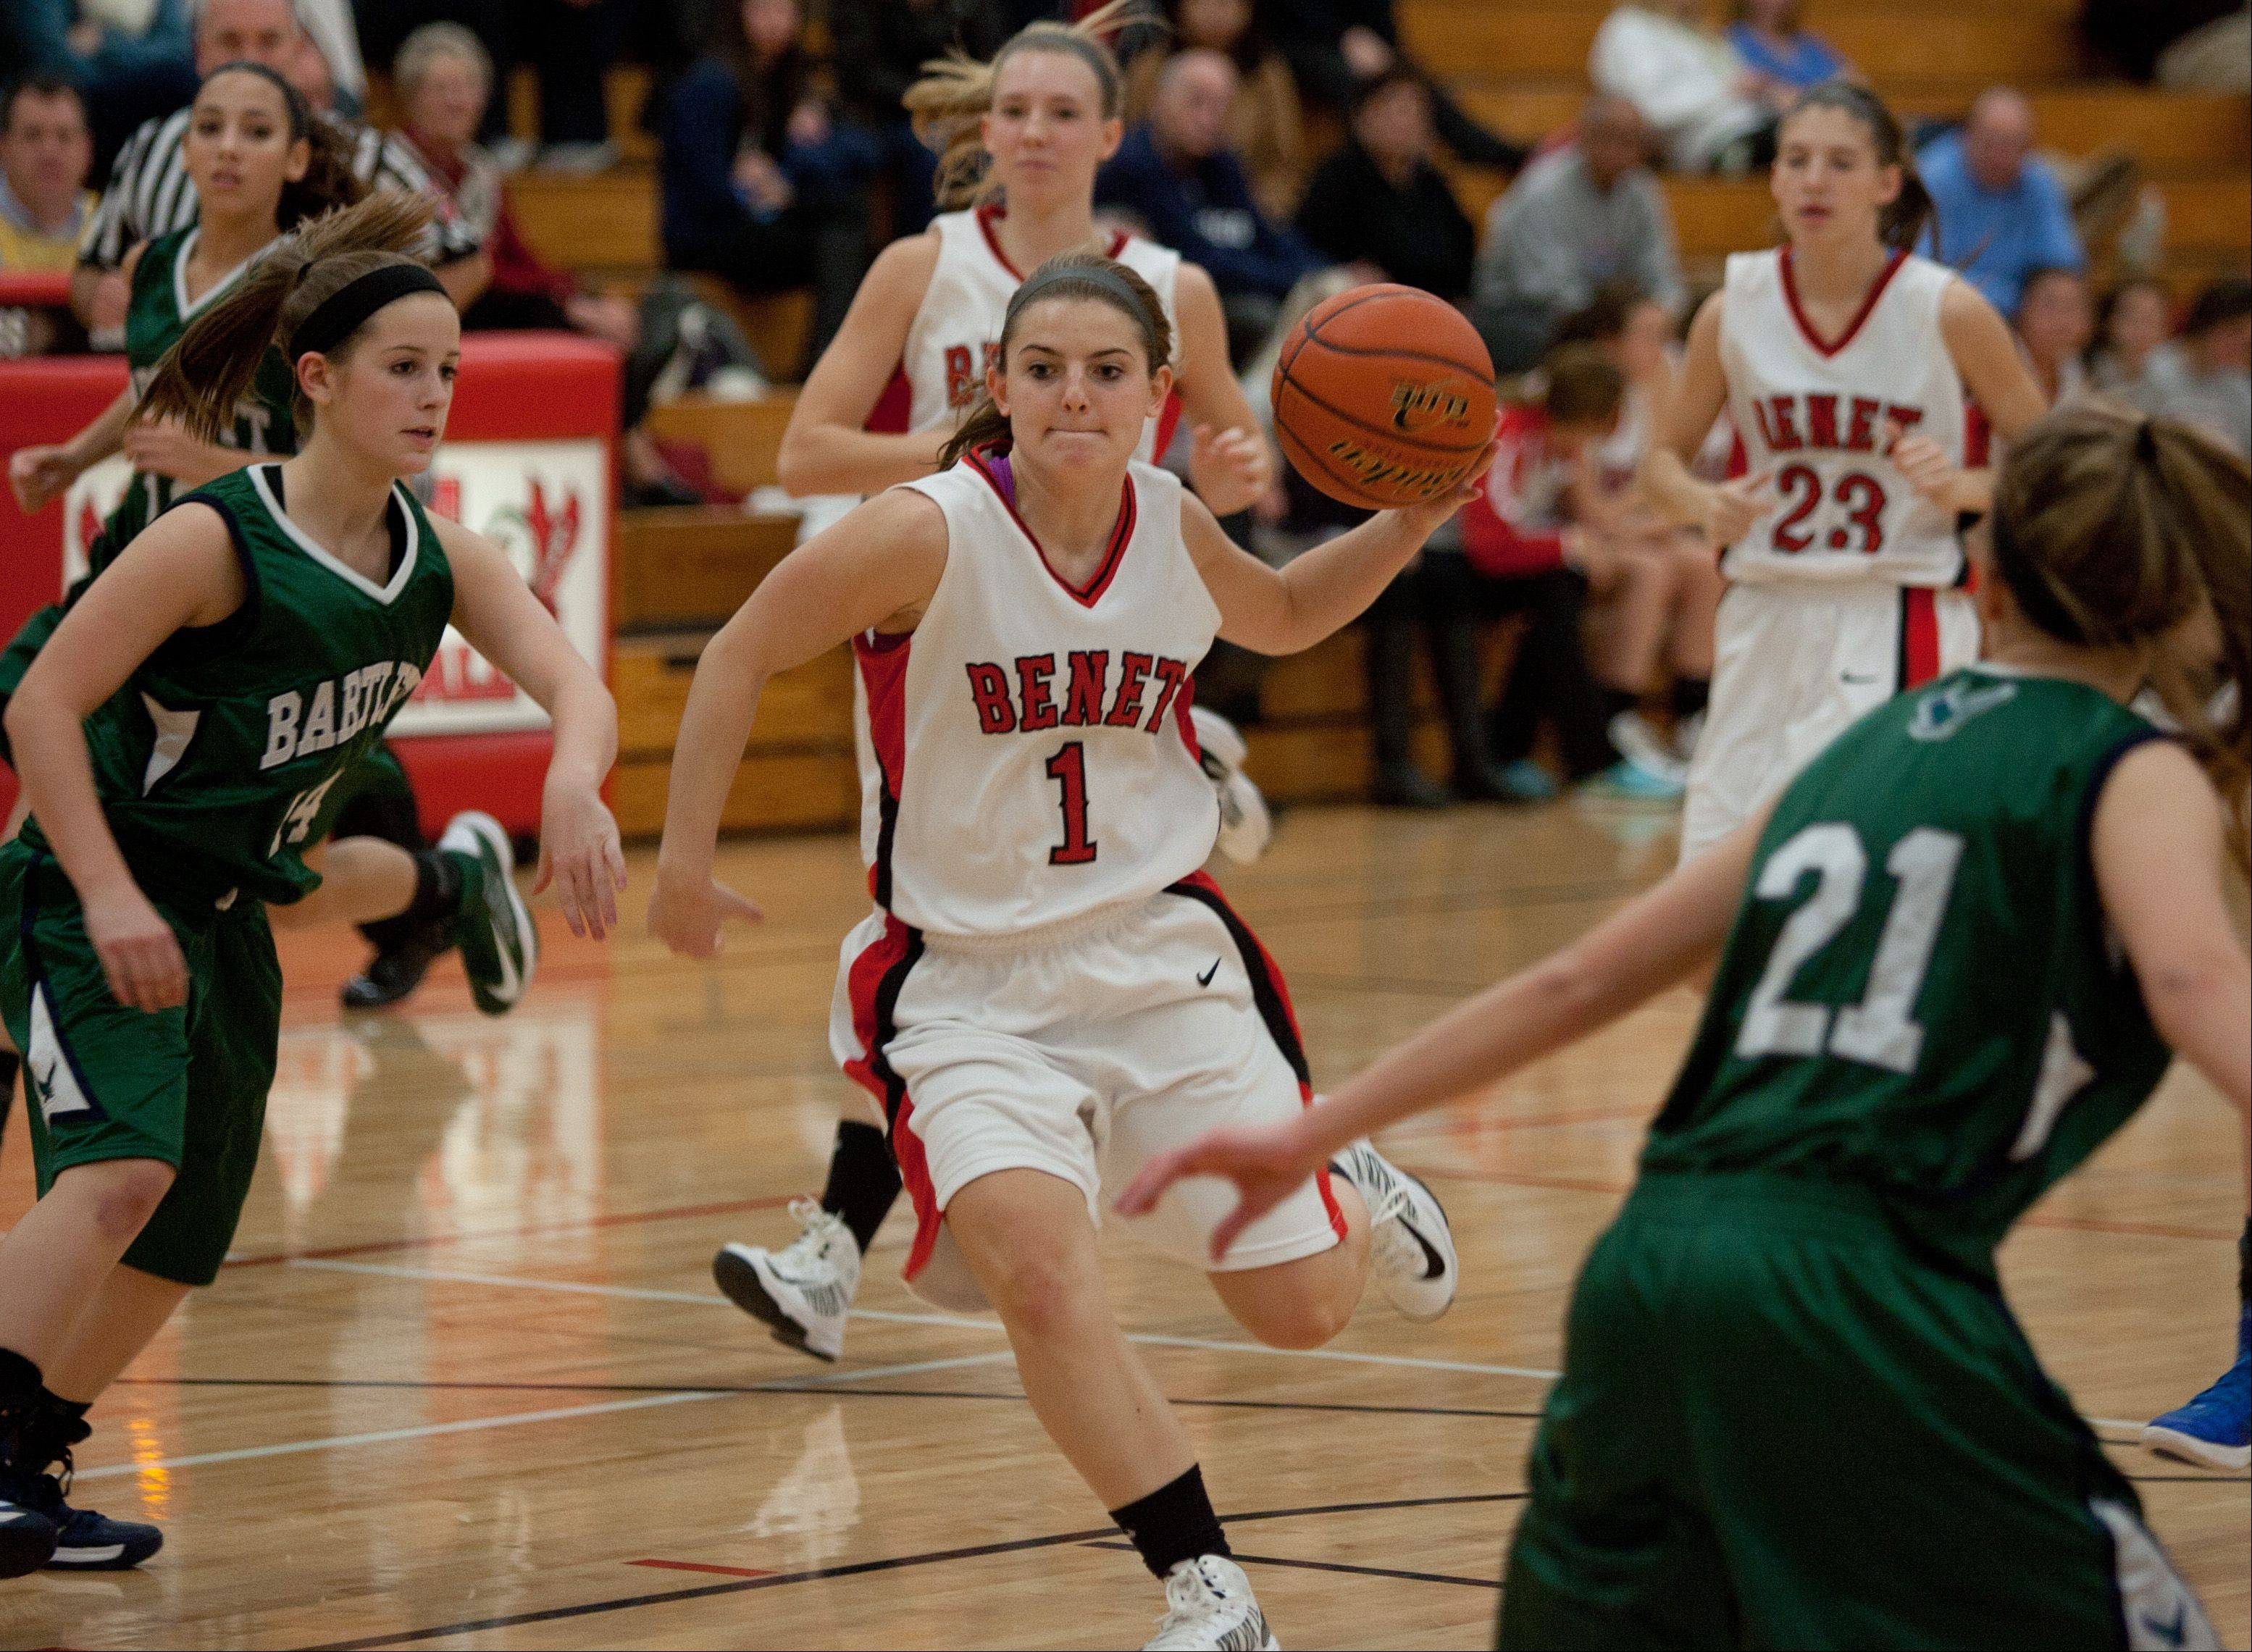 Benet's Morgan Thomalla (1) drives the lane against Bartlett, during girls basketball action at Benet,